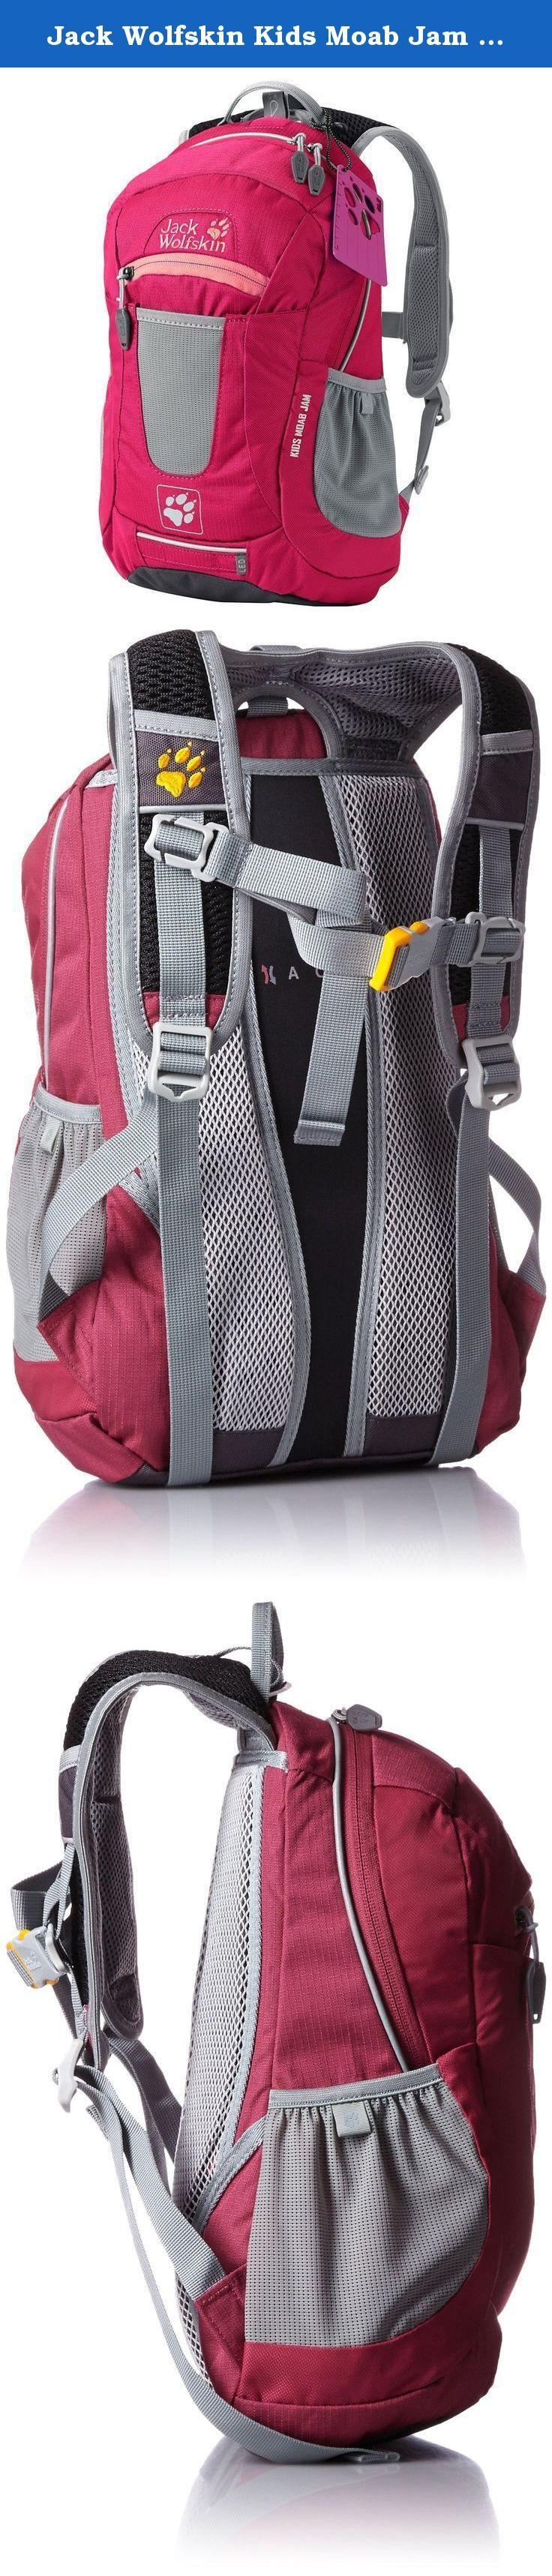 Jack Wolfskin Kids Moab Jam Basic Backpack, Azalea Red. This sporty rucksack has the typical features of a JACK WOLFSKIN bike rucksack: it's equipped to hold a hydration system, features an anchor loop for an LED light and has reflectors on the shoulder straps and pack sack. The rucksack has a stretchy mesh pouch on the front, an external pocket, a main compartment and two stretchy side pockets.